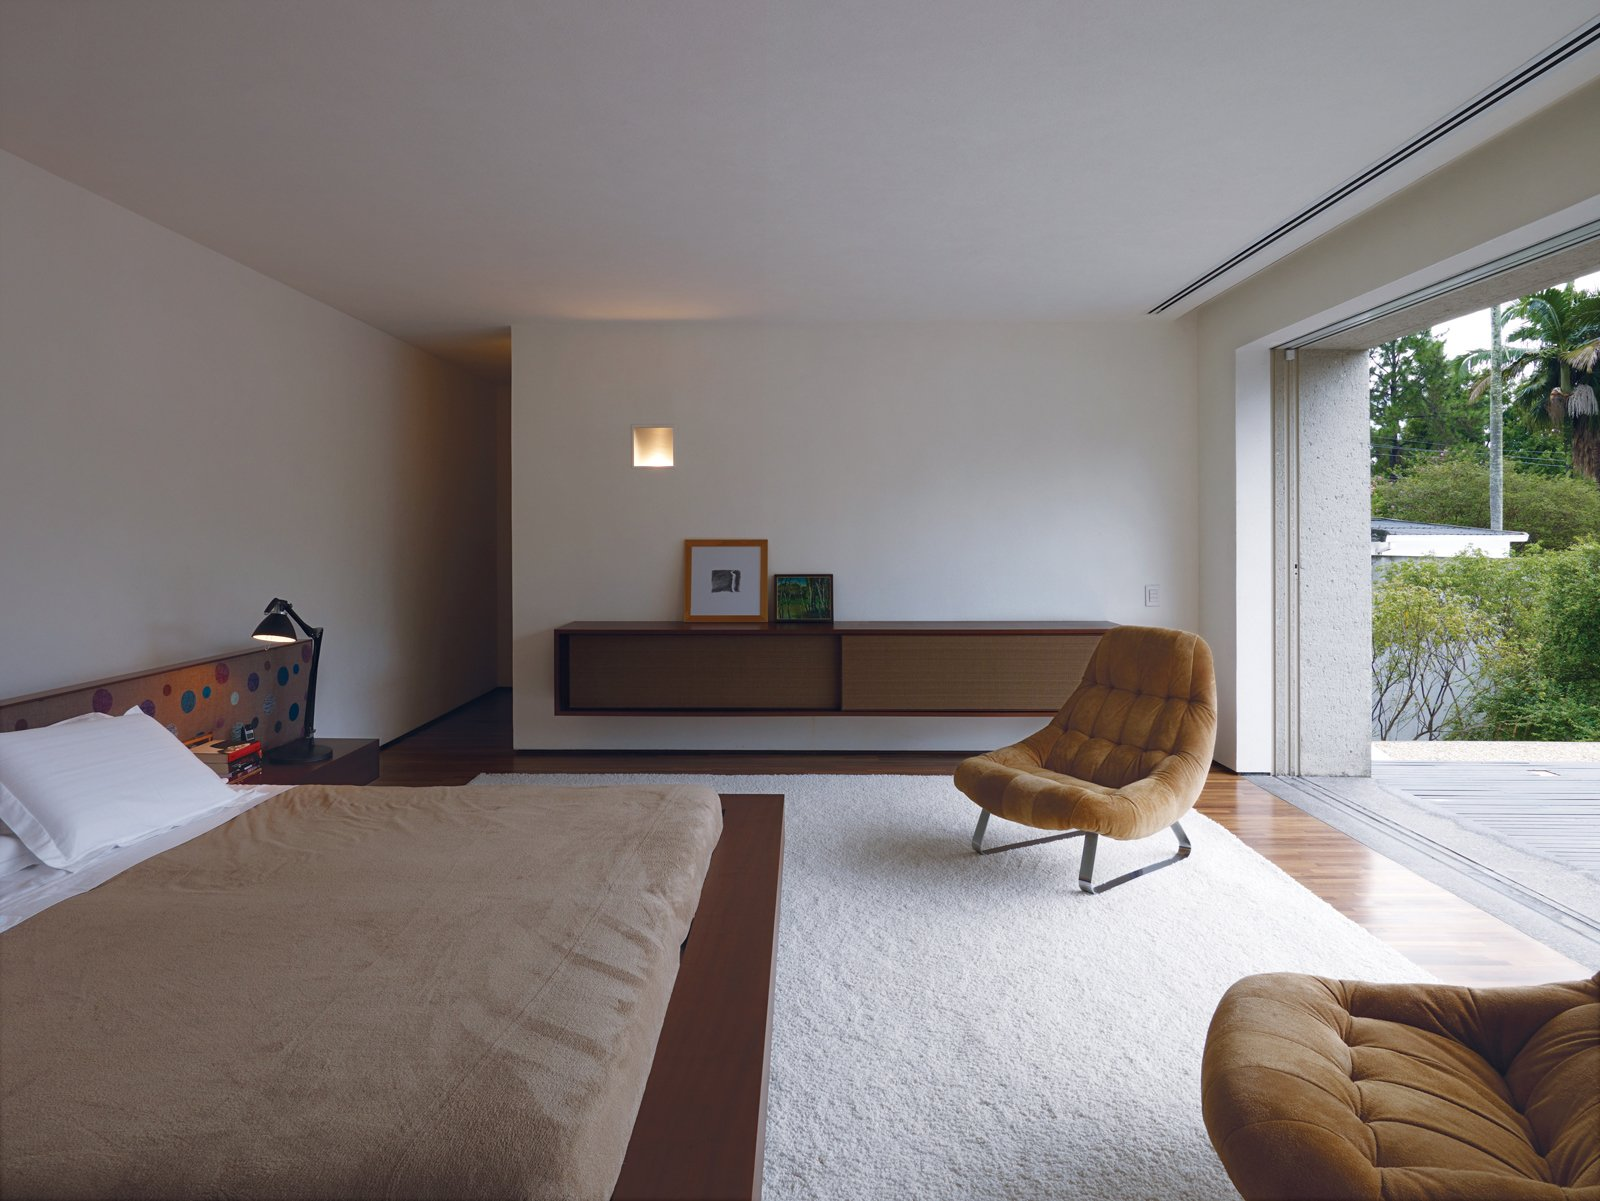 Kogan designed a number of the built-in furnishings, including the headboard and cupboard in the master bedroom.The cupboard is deliberately reminiscent of a mid-century stereo speaker. The vintage lounge chairs are by Percival Lafer.  Modern Bedroom Ideas  by Matthew Keeshin from São Paulo, Brazil